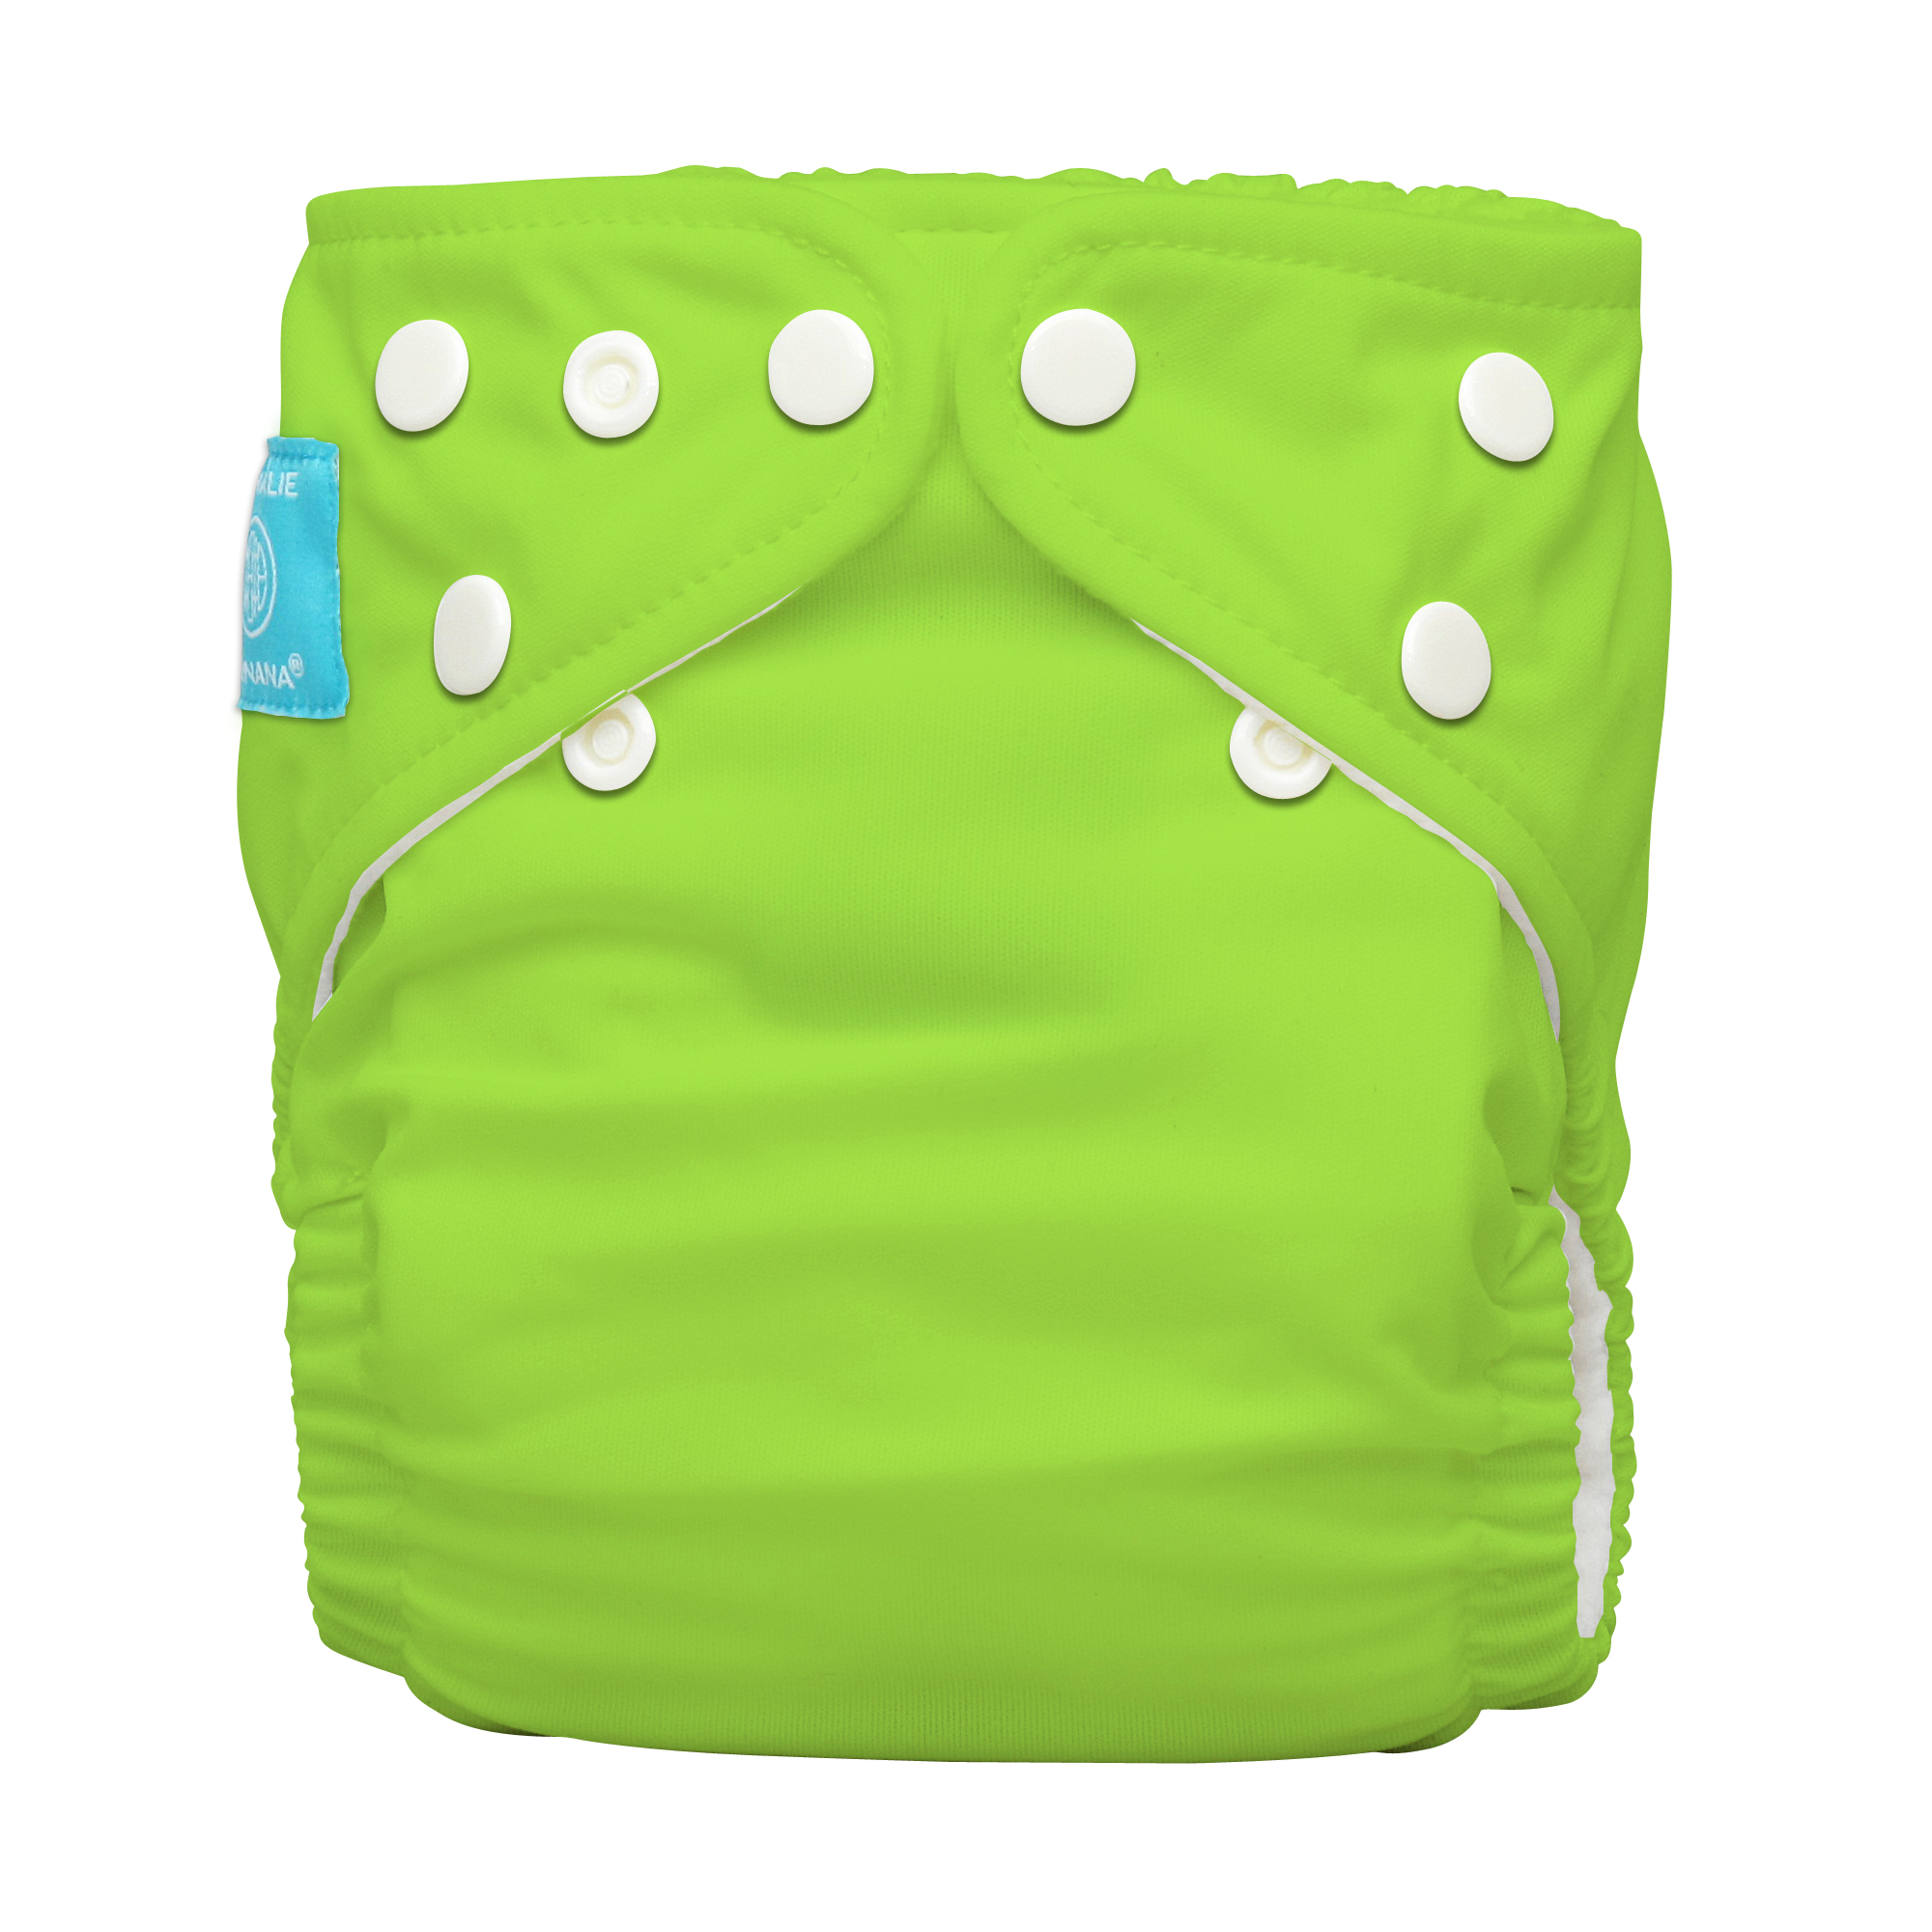 Charlie Banana Reusable Diapering System Green